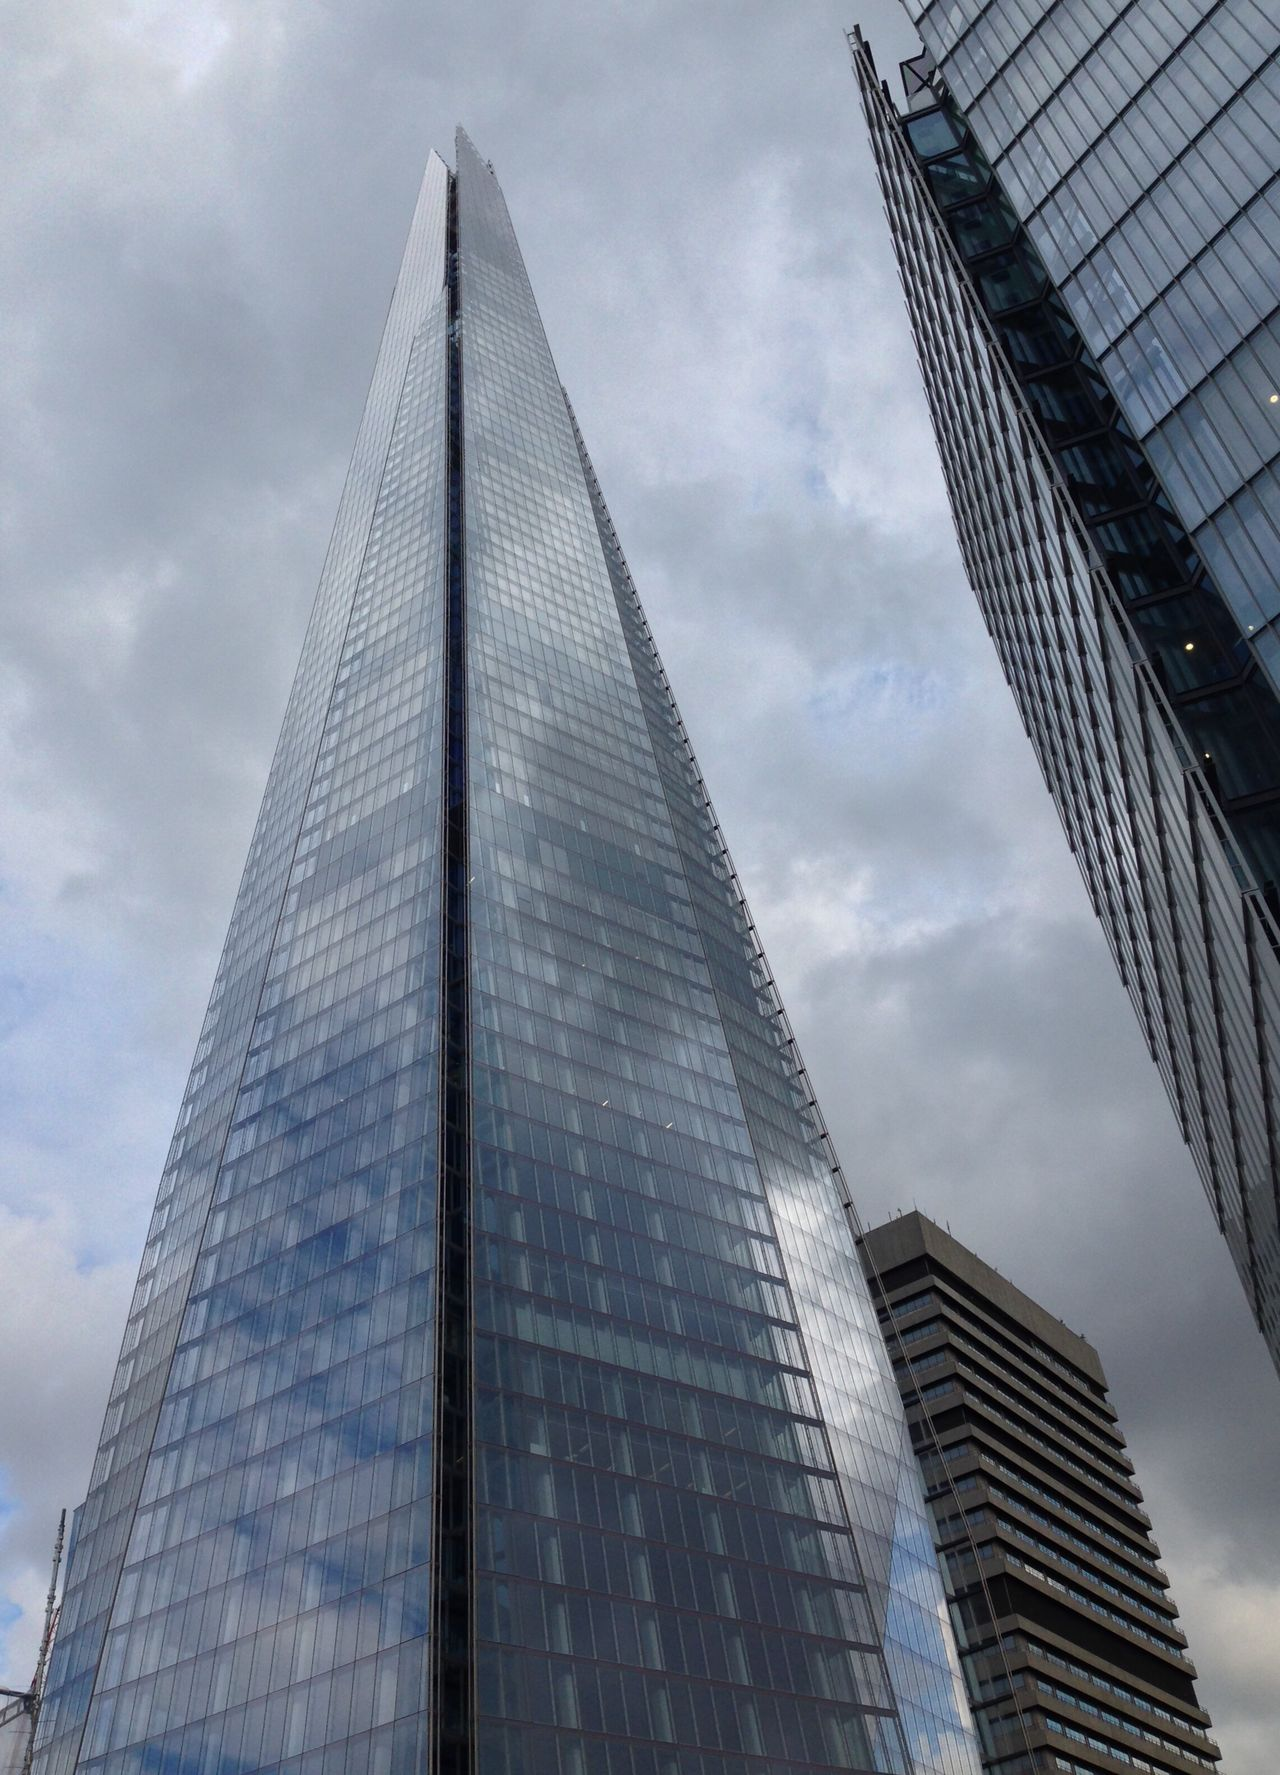 The Shard London. London Lifestyle Architecture Low Angle View Built Structure Sky Building Exterior Skyscraper Modern City Reflection Cloud - Sky Tower Outdoors Day No People Tall EyeEm Best Shots Famous Places The Shard, London Architecture London Landmarks London Architecture Capital Cities  EyeEm Gallery London